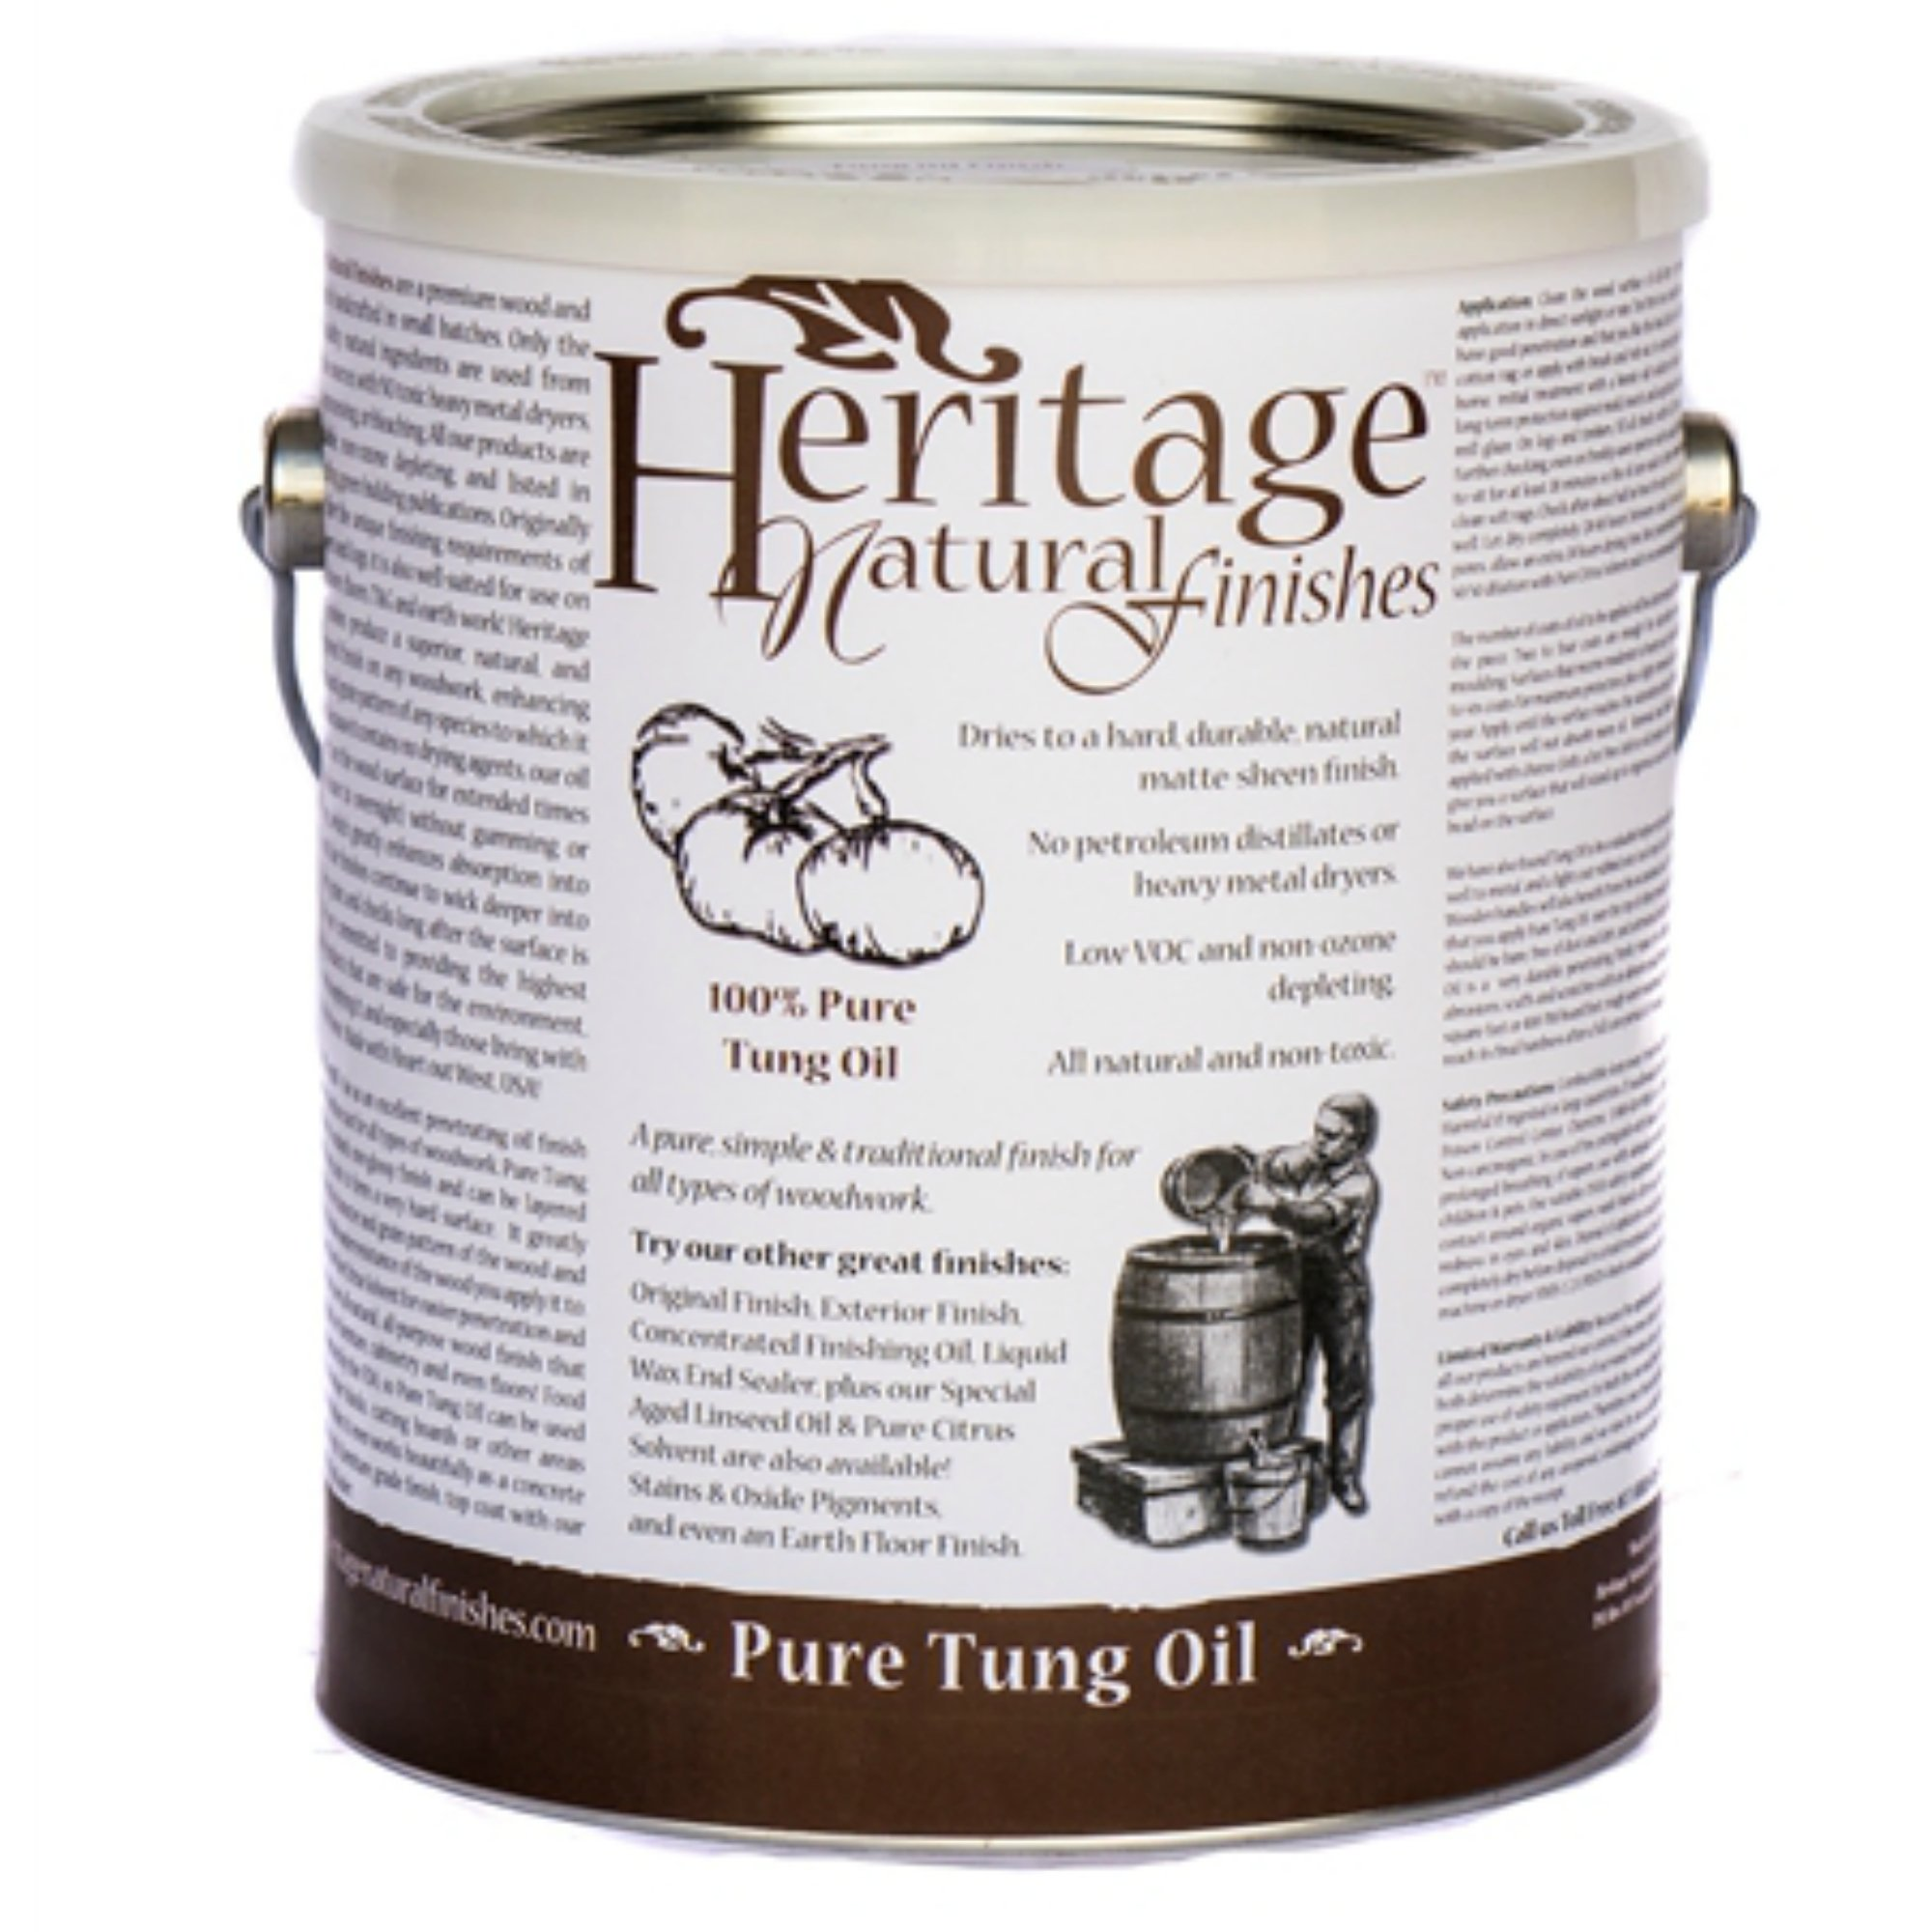 Heritage Natural Finishes - 100% Pure Tung Oil - Natural Oil Finish for All Types of Woodwork - Approved Food Safe by The FDA (1 Quart) by Heritage Natural Finishes